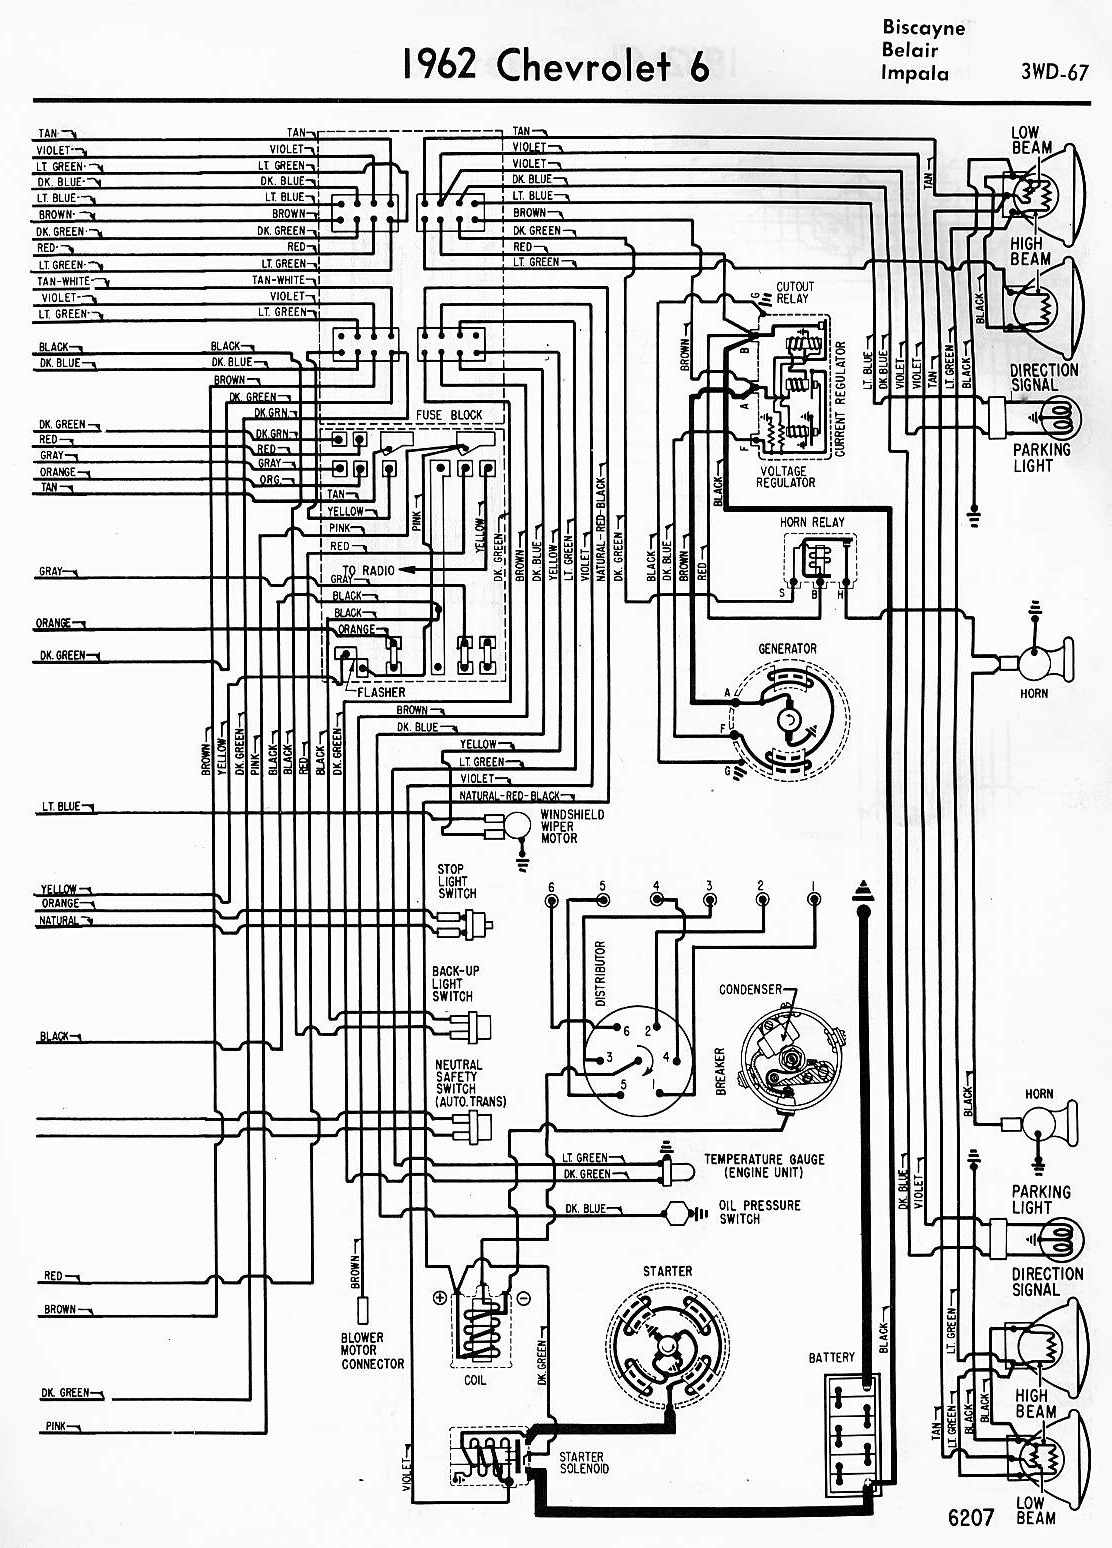 Electrical+Wiring+Diagram+Of+1964+Chevrolet+6 2011 impala wiring diagram 2005 impala ignition wiring diagram 1962 impala wiring harness at cos-gaming.co